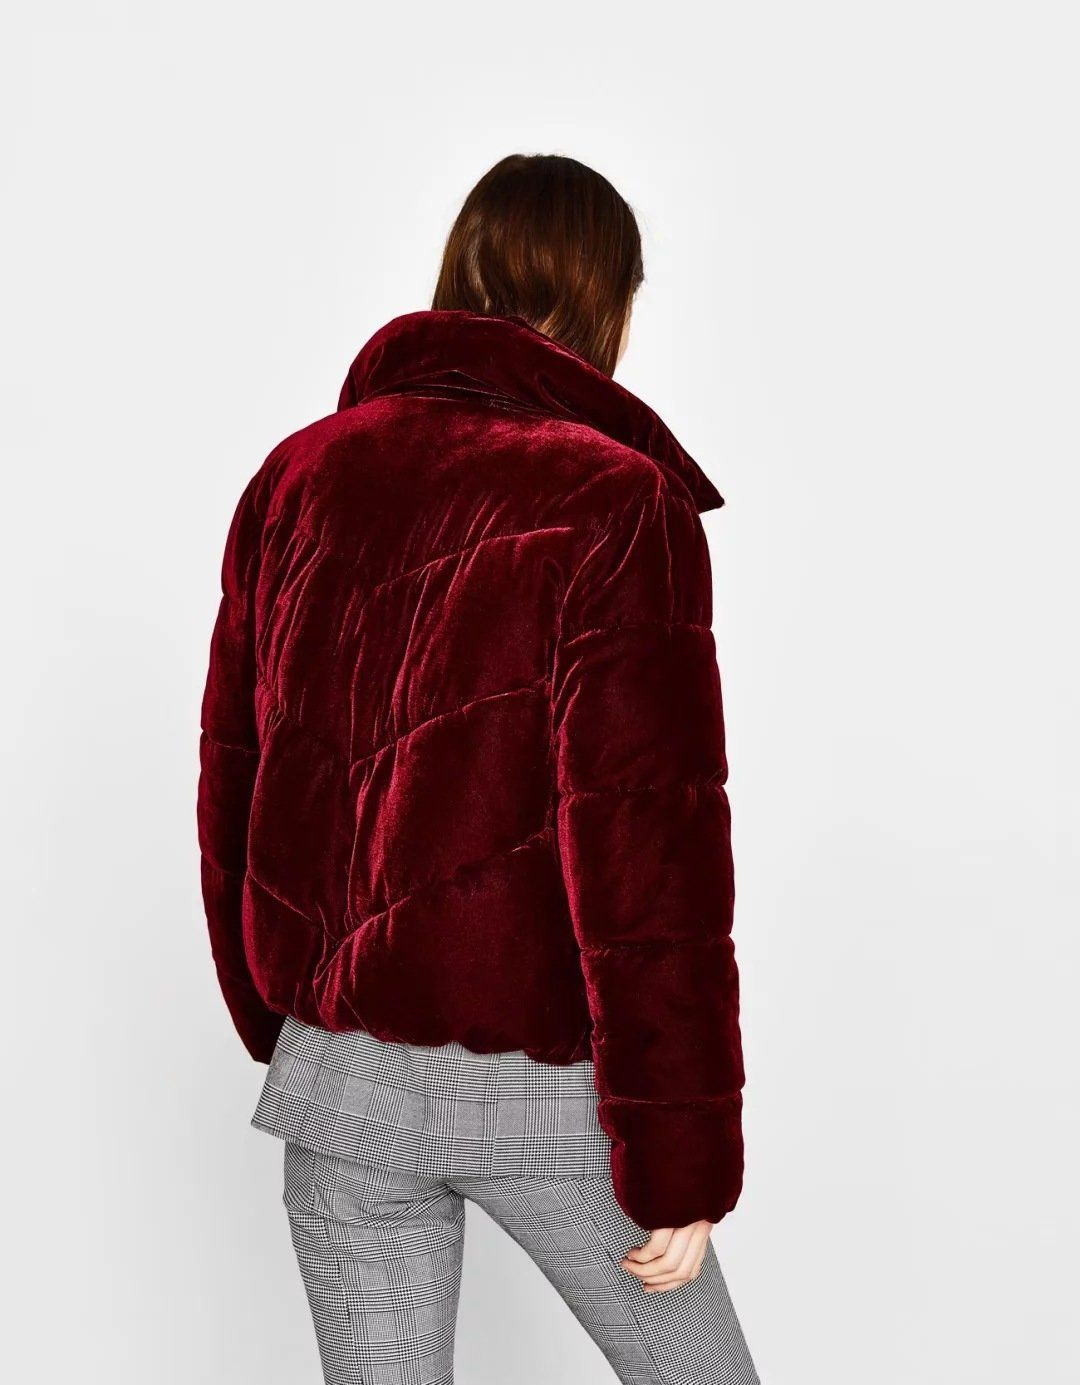 Velvet Winter Jacket